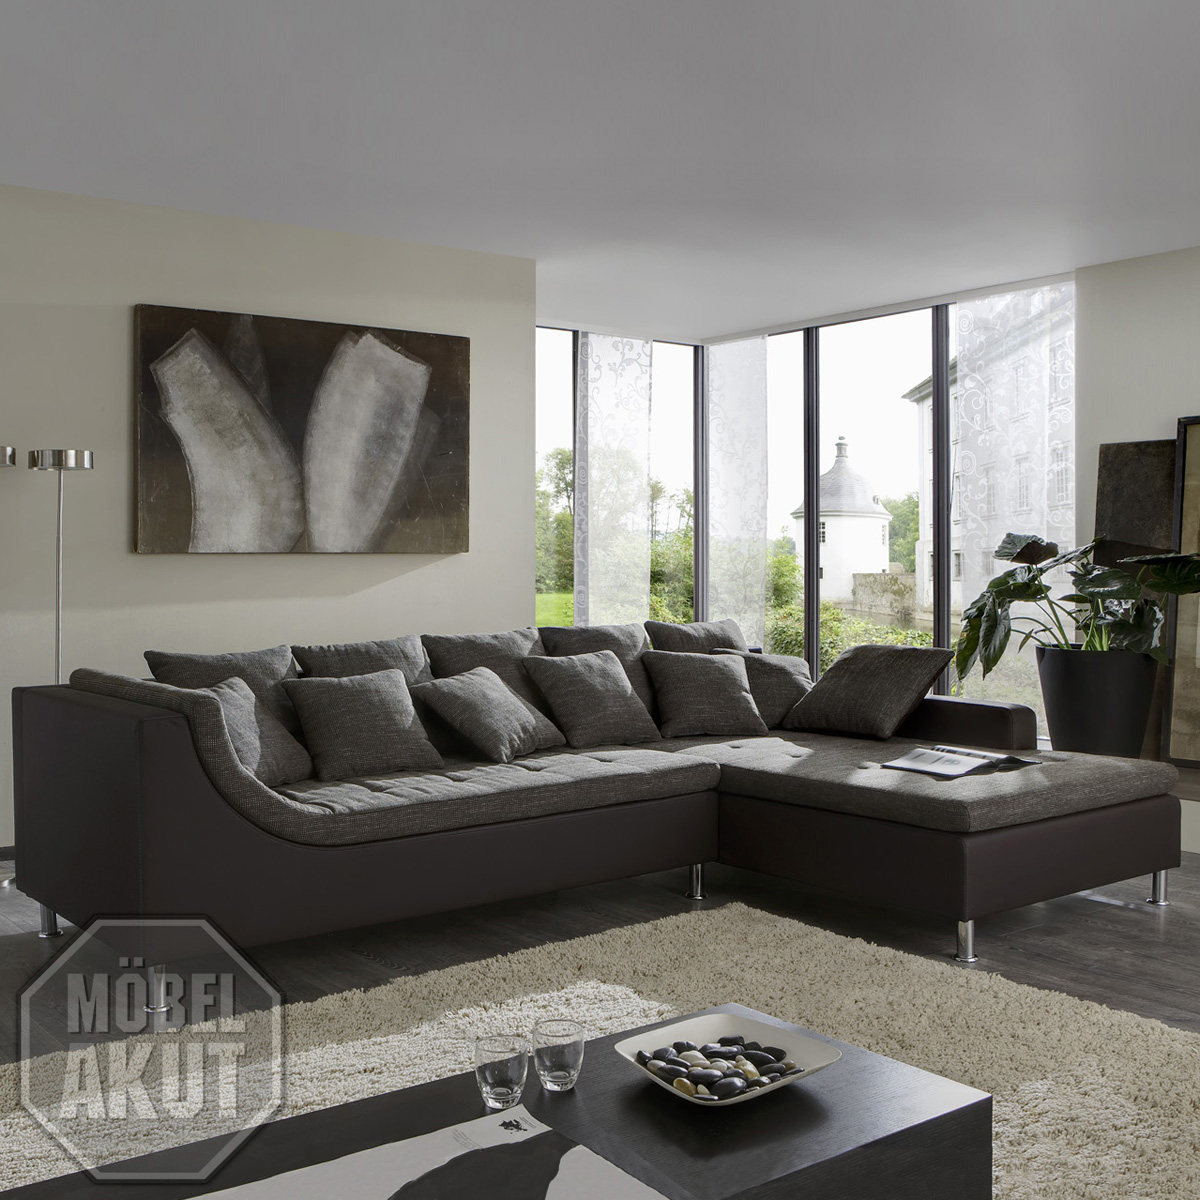 wohnlandschaft moreno sofa braun grau neu ovp ebay. Black Bedroom Furniture Sets. Home Design Ideas